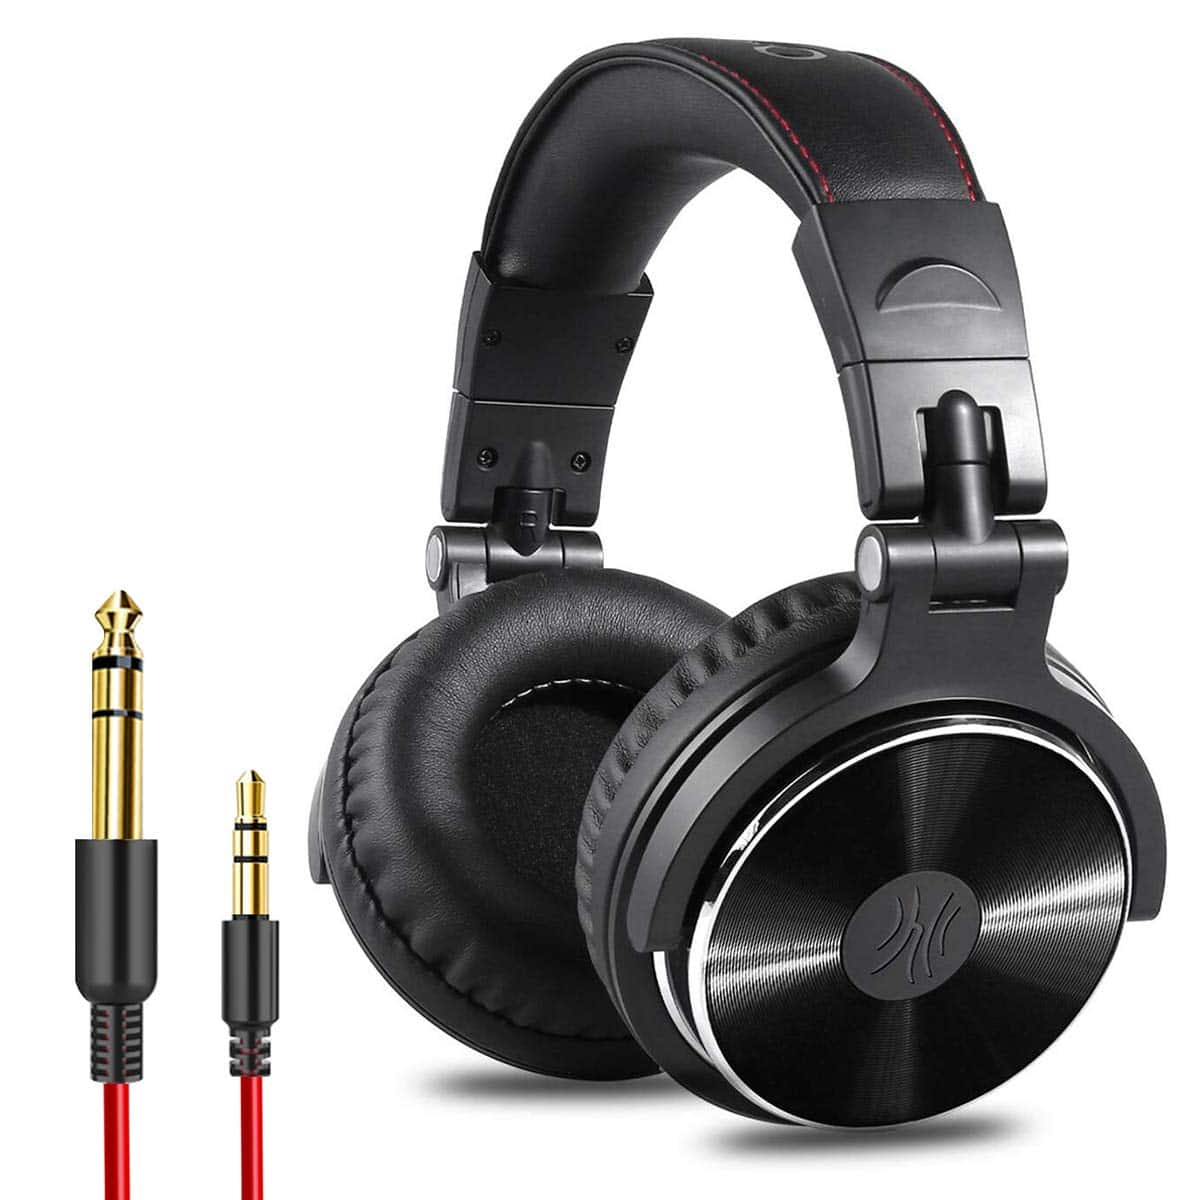 OneOdio Adapter-Free Closed Back Over-Ear DJ Stereo Monitor Headphones, Professional Studio Monitor & Mixing, Telescopic Arms with Scale, Newest 50mm Neodymium Drivers $37.99